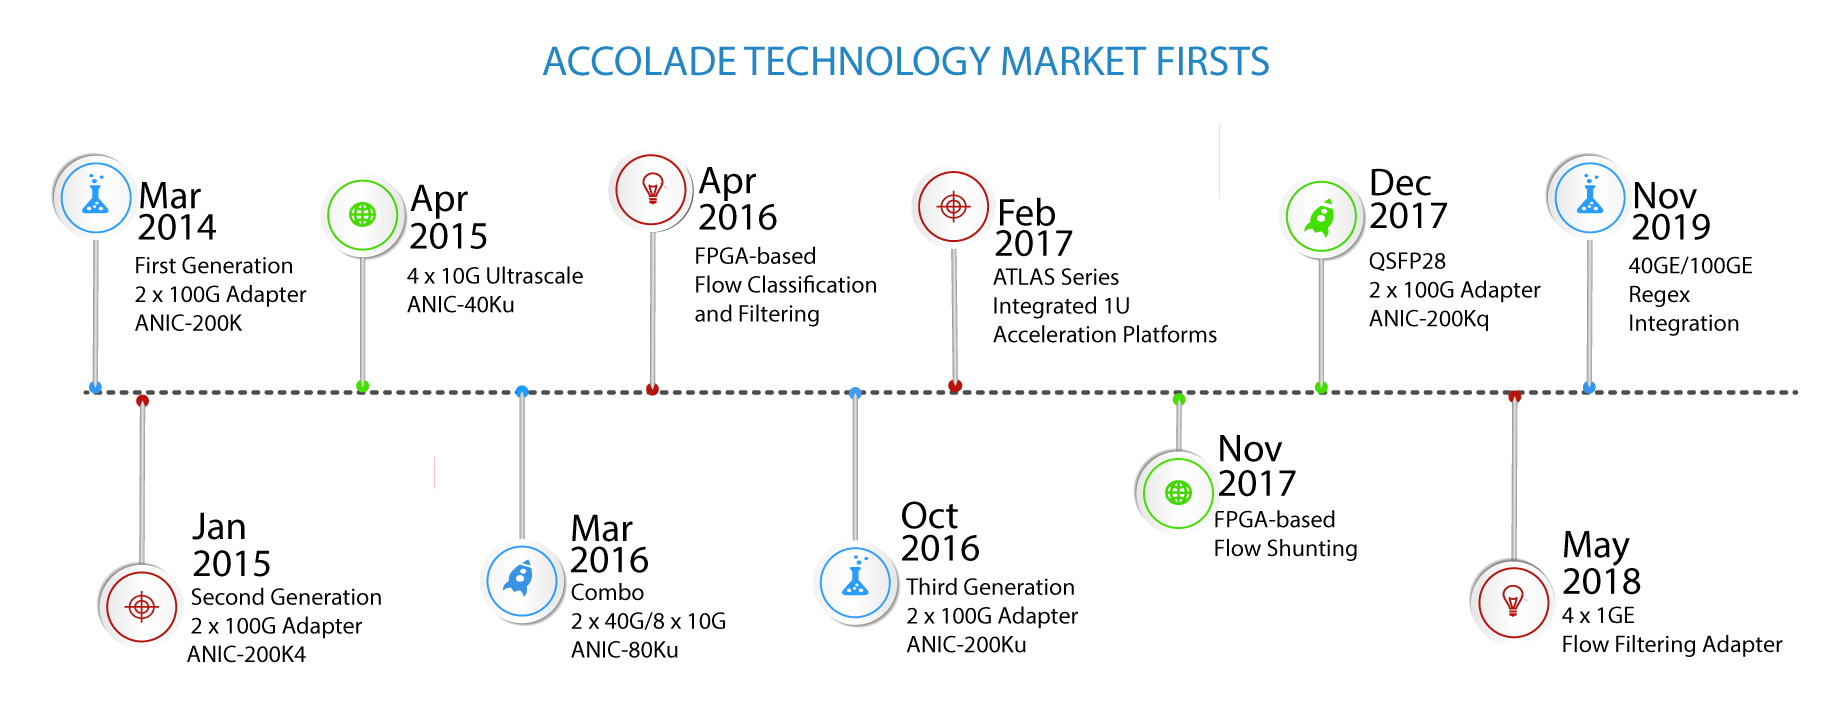 Accolade Technology Market Firsts